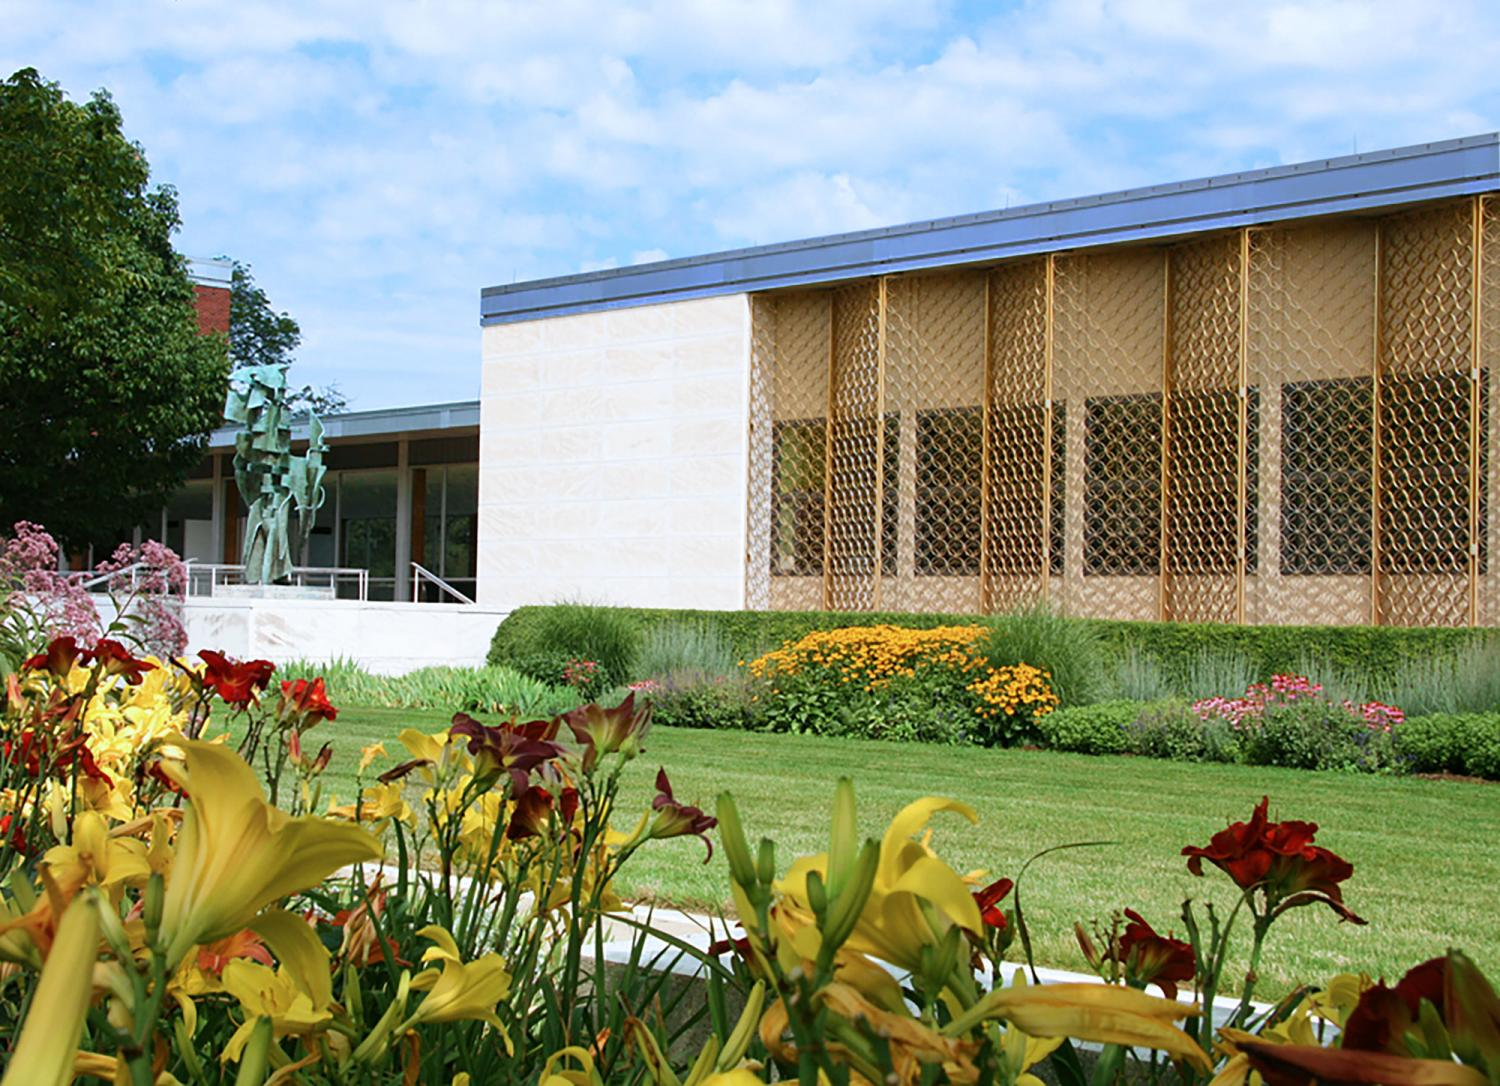 Krannert Art Museum, view from Gelvin Gardens, 2014.